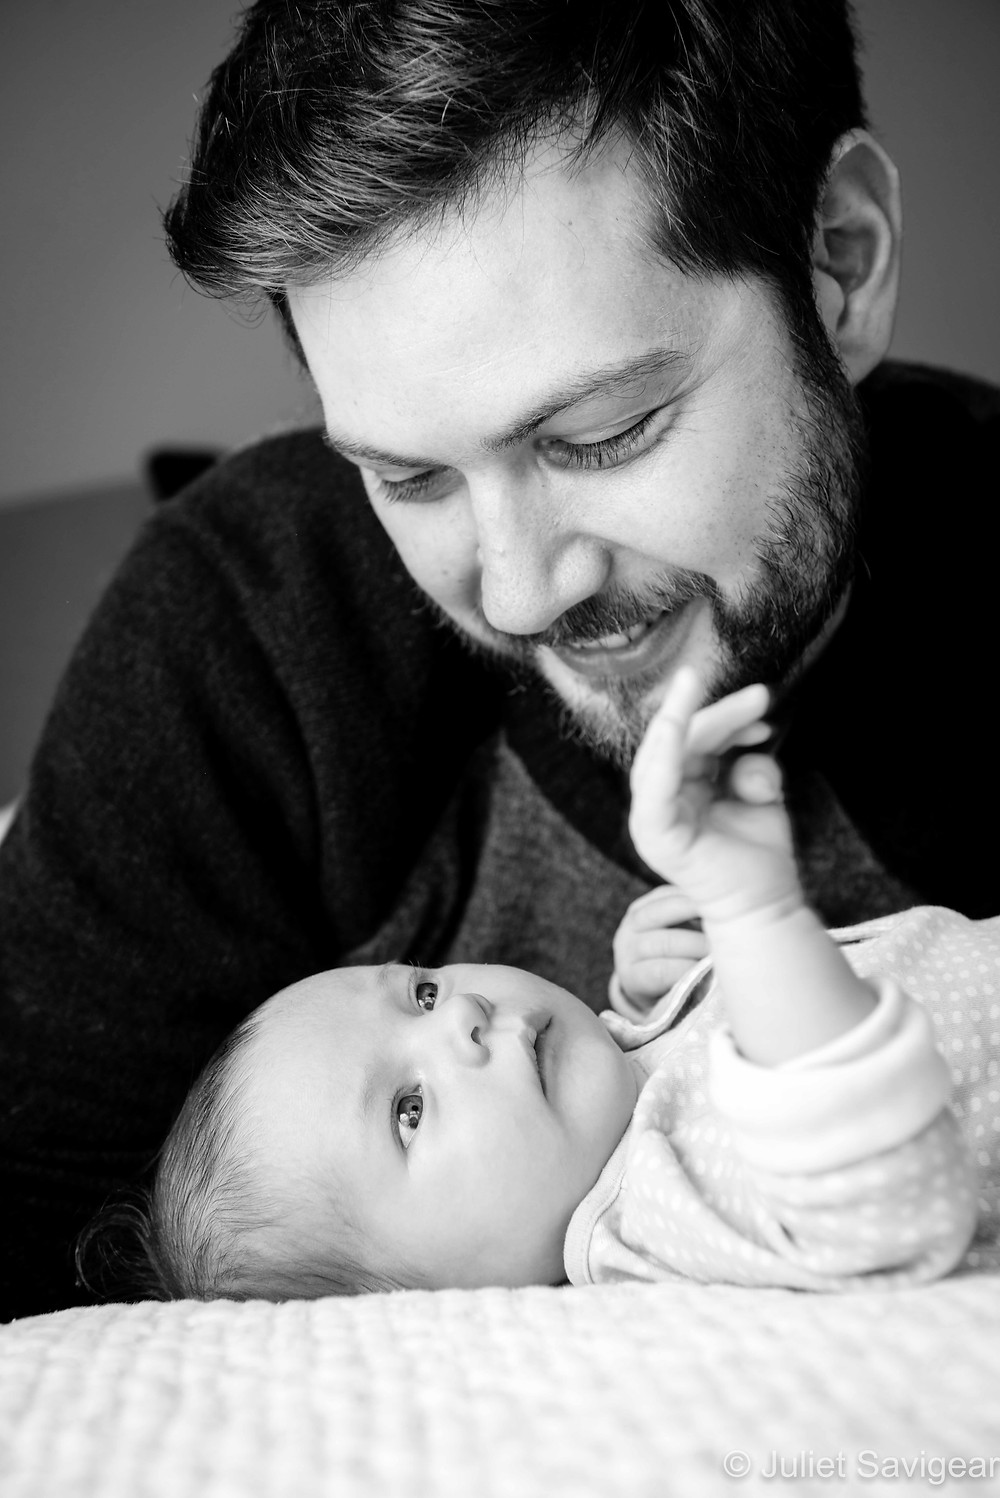 Father's joy of new baby